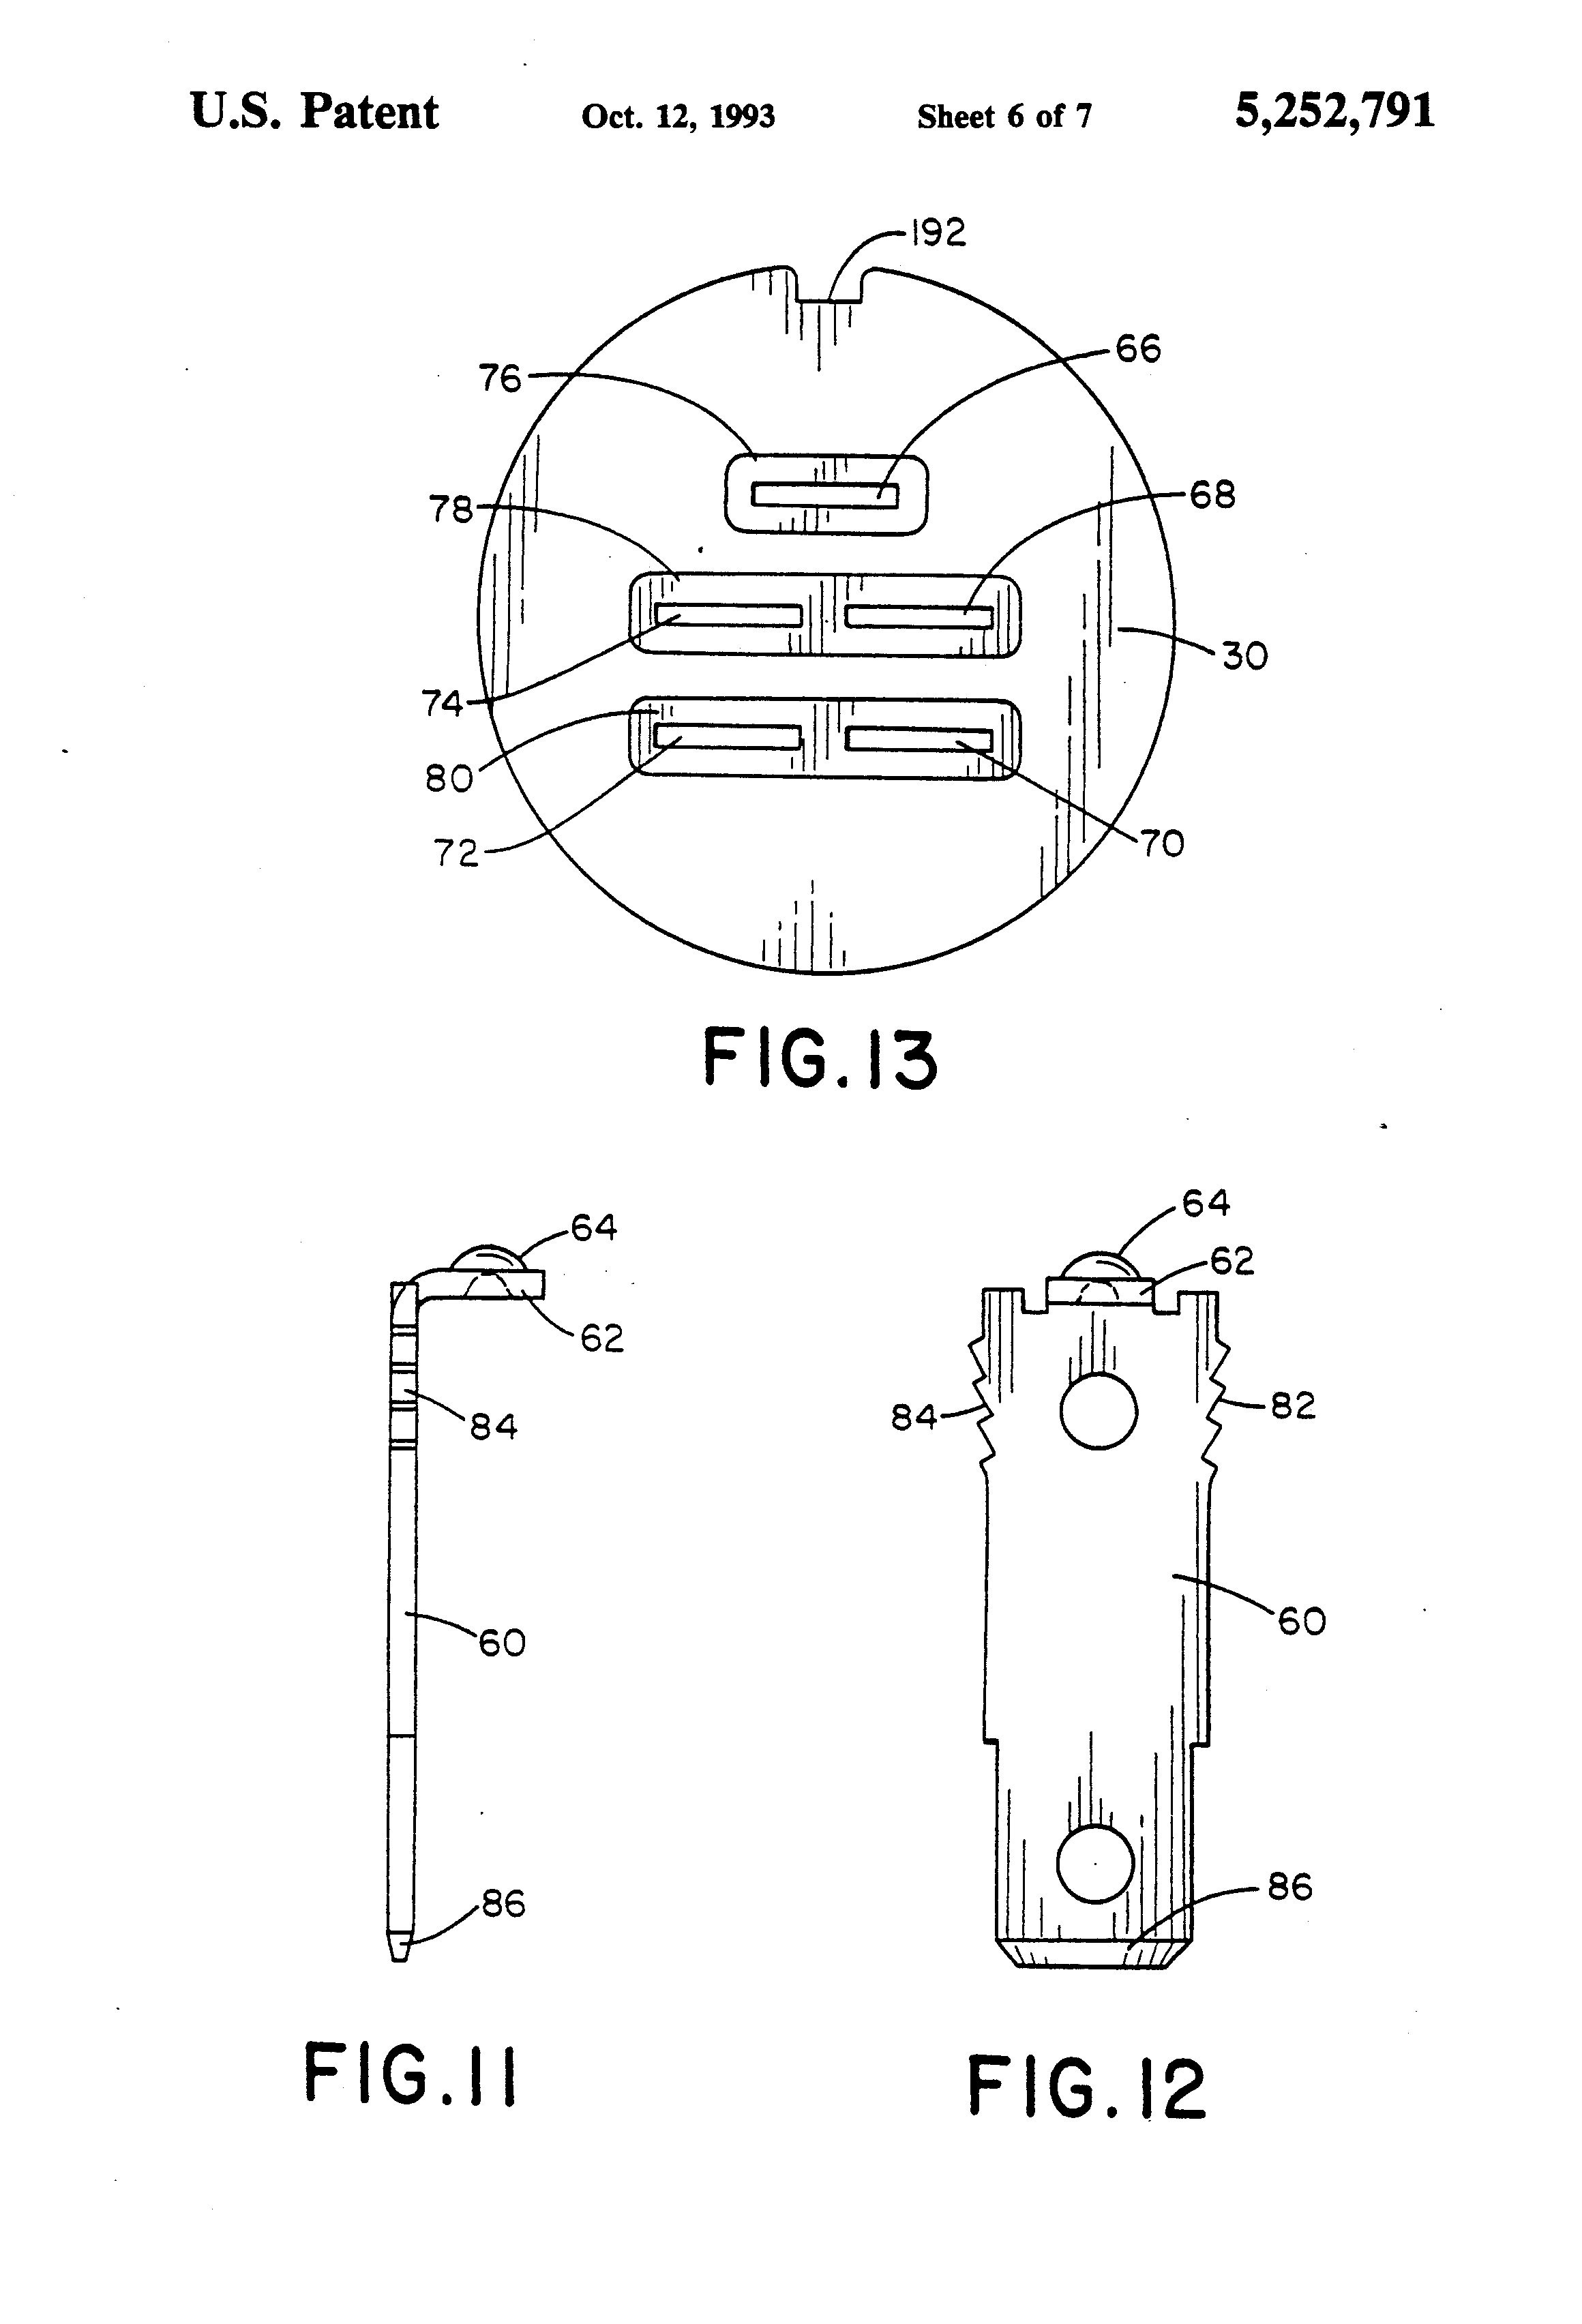 5 Prong Ignition Switch Wiring Diagram 5 Prong Ignition Switch - 5 Prong Ignition Switch Wiring Diagram